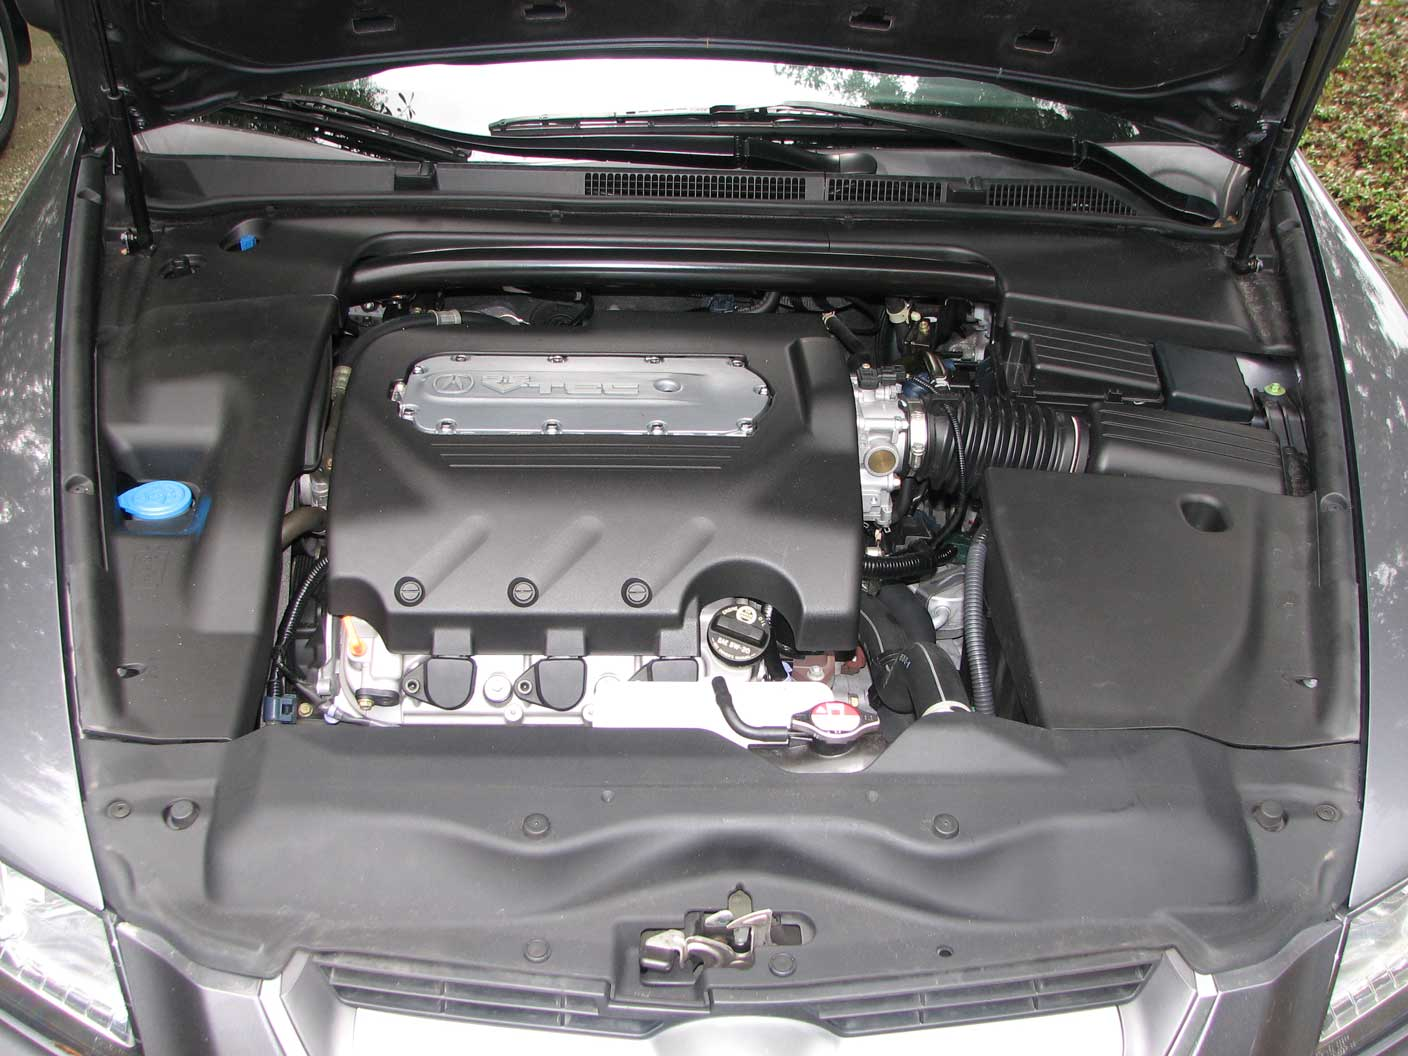 Acura TL Engine Grounding for $20 : 9 Steps - Instructables | 1998 Acura Cl Engine Bay Diagram |  | Instructables